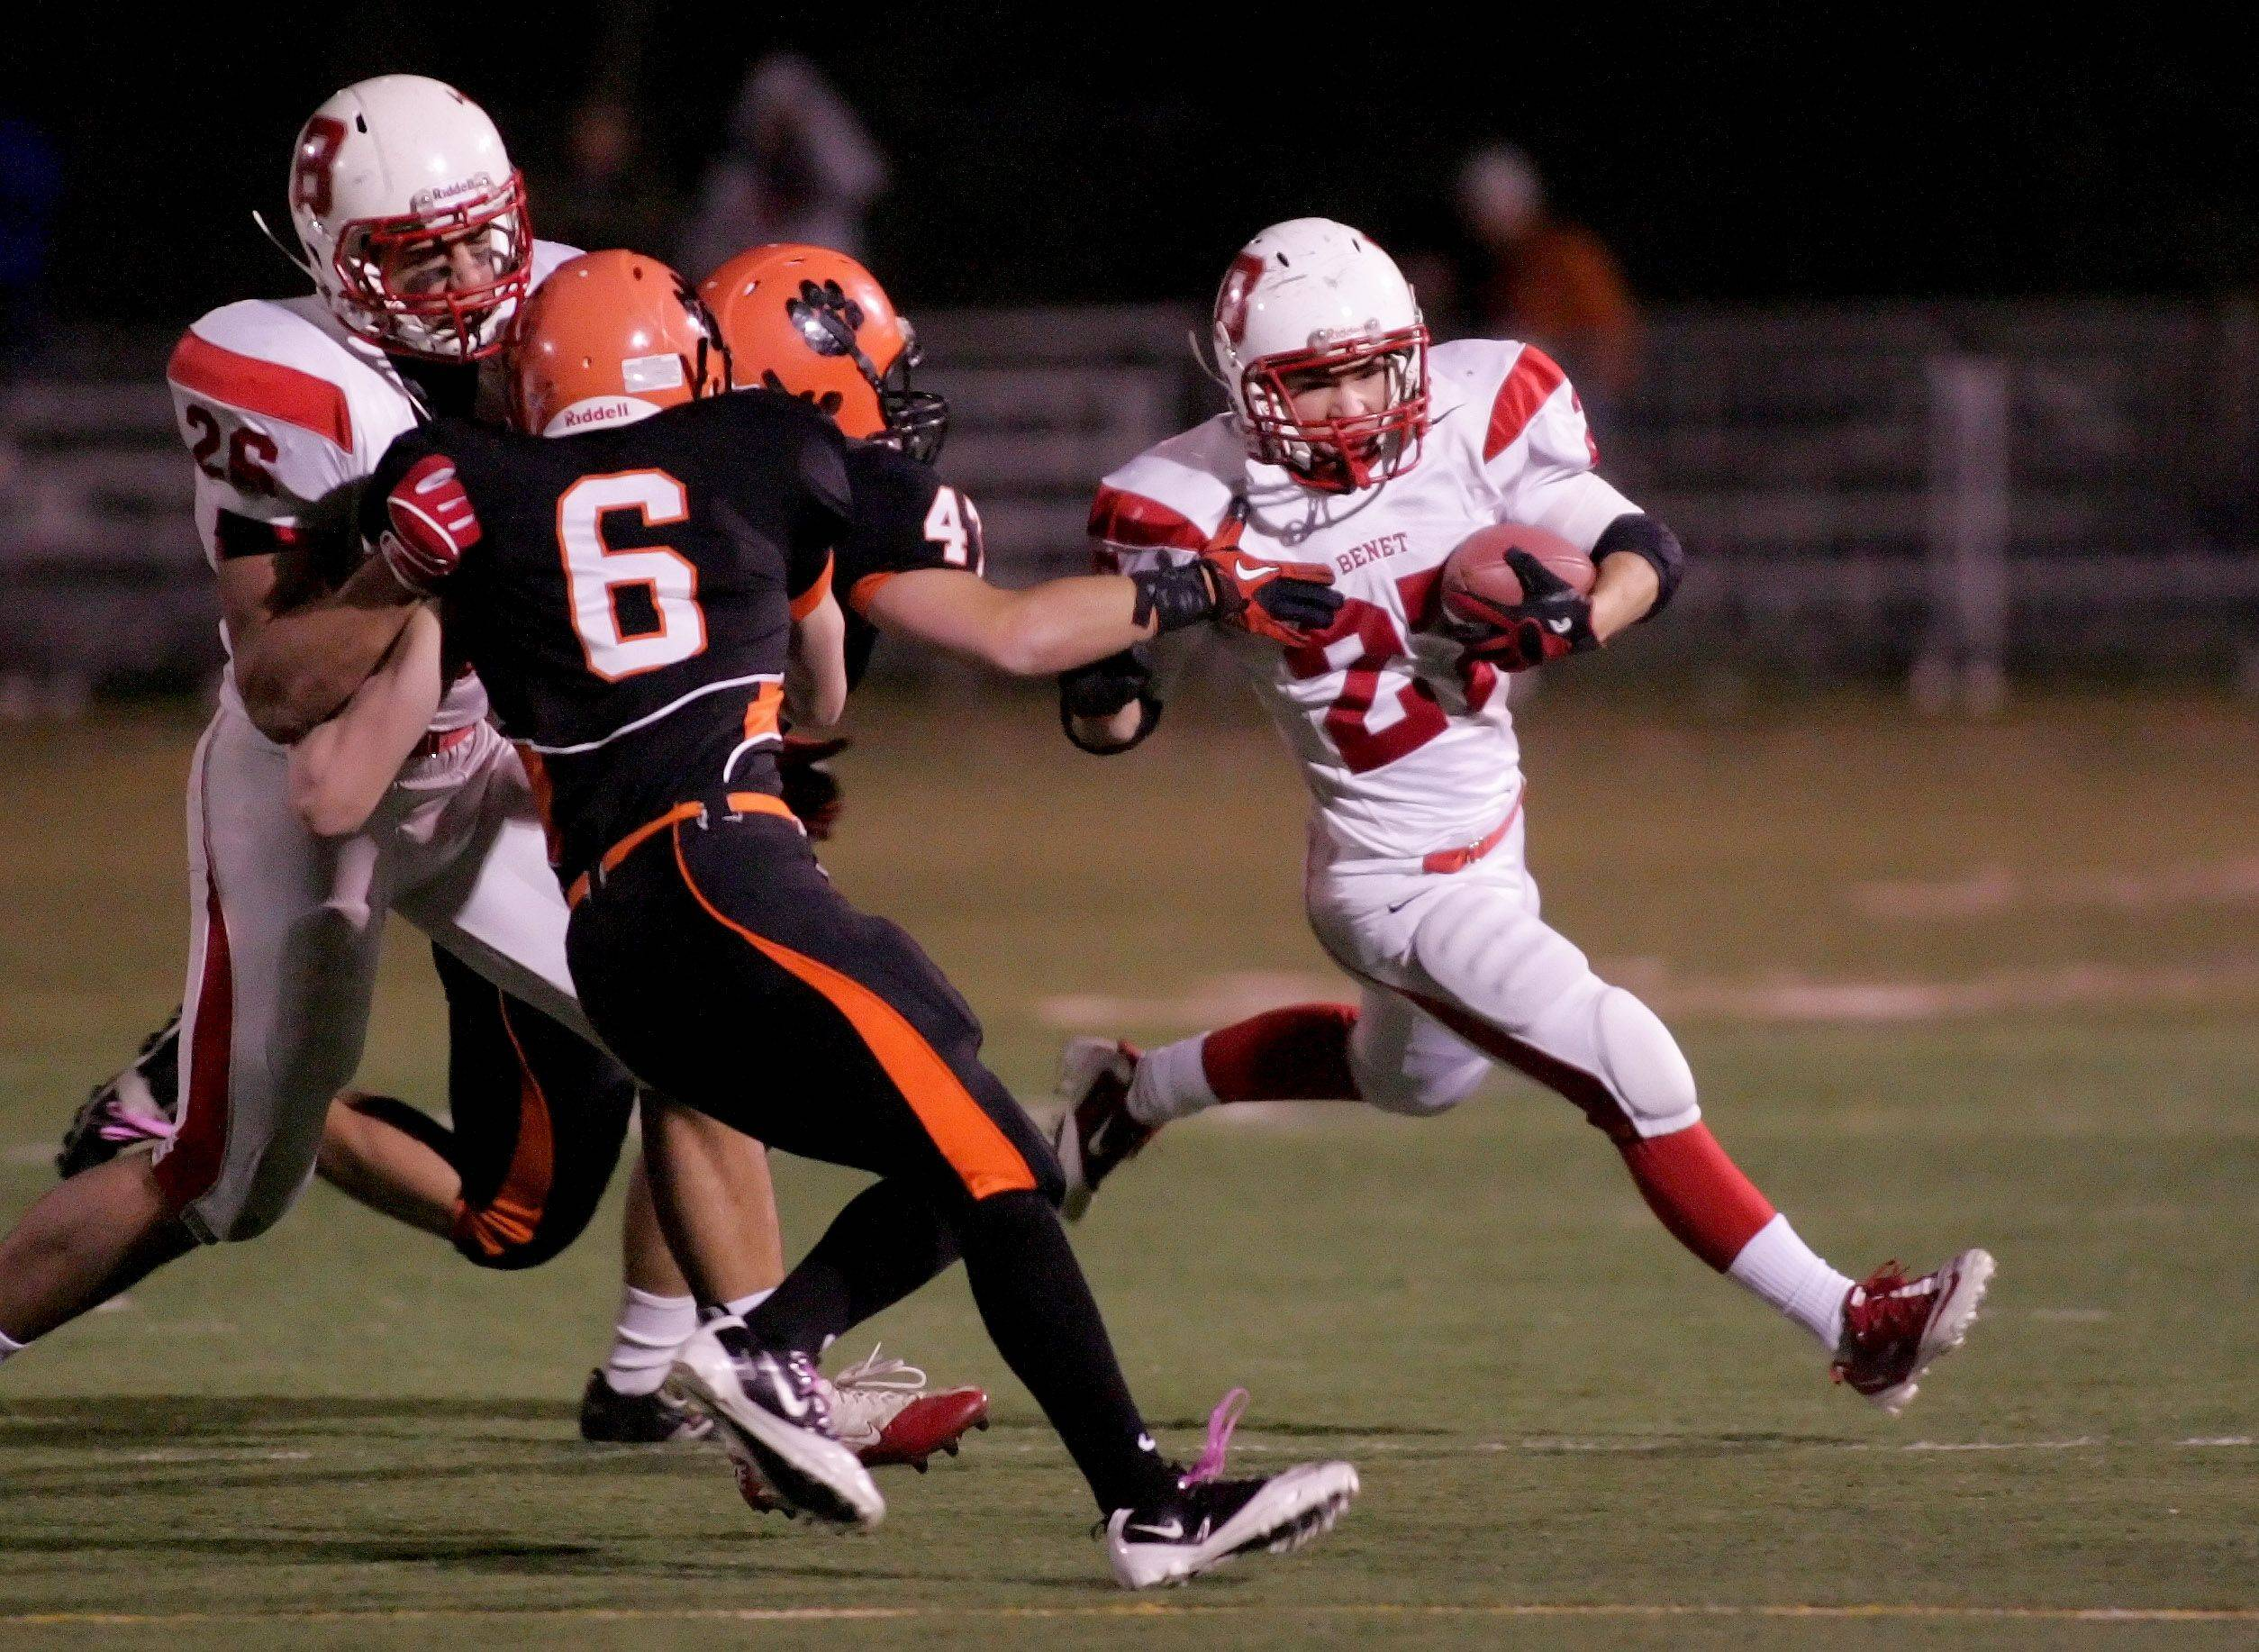 E.J. Howe, right of Benet, in action against Wheaton Warrenville South during playoff football Friday in Wheaton.